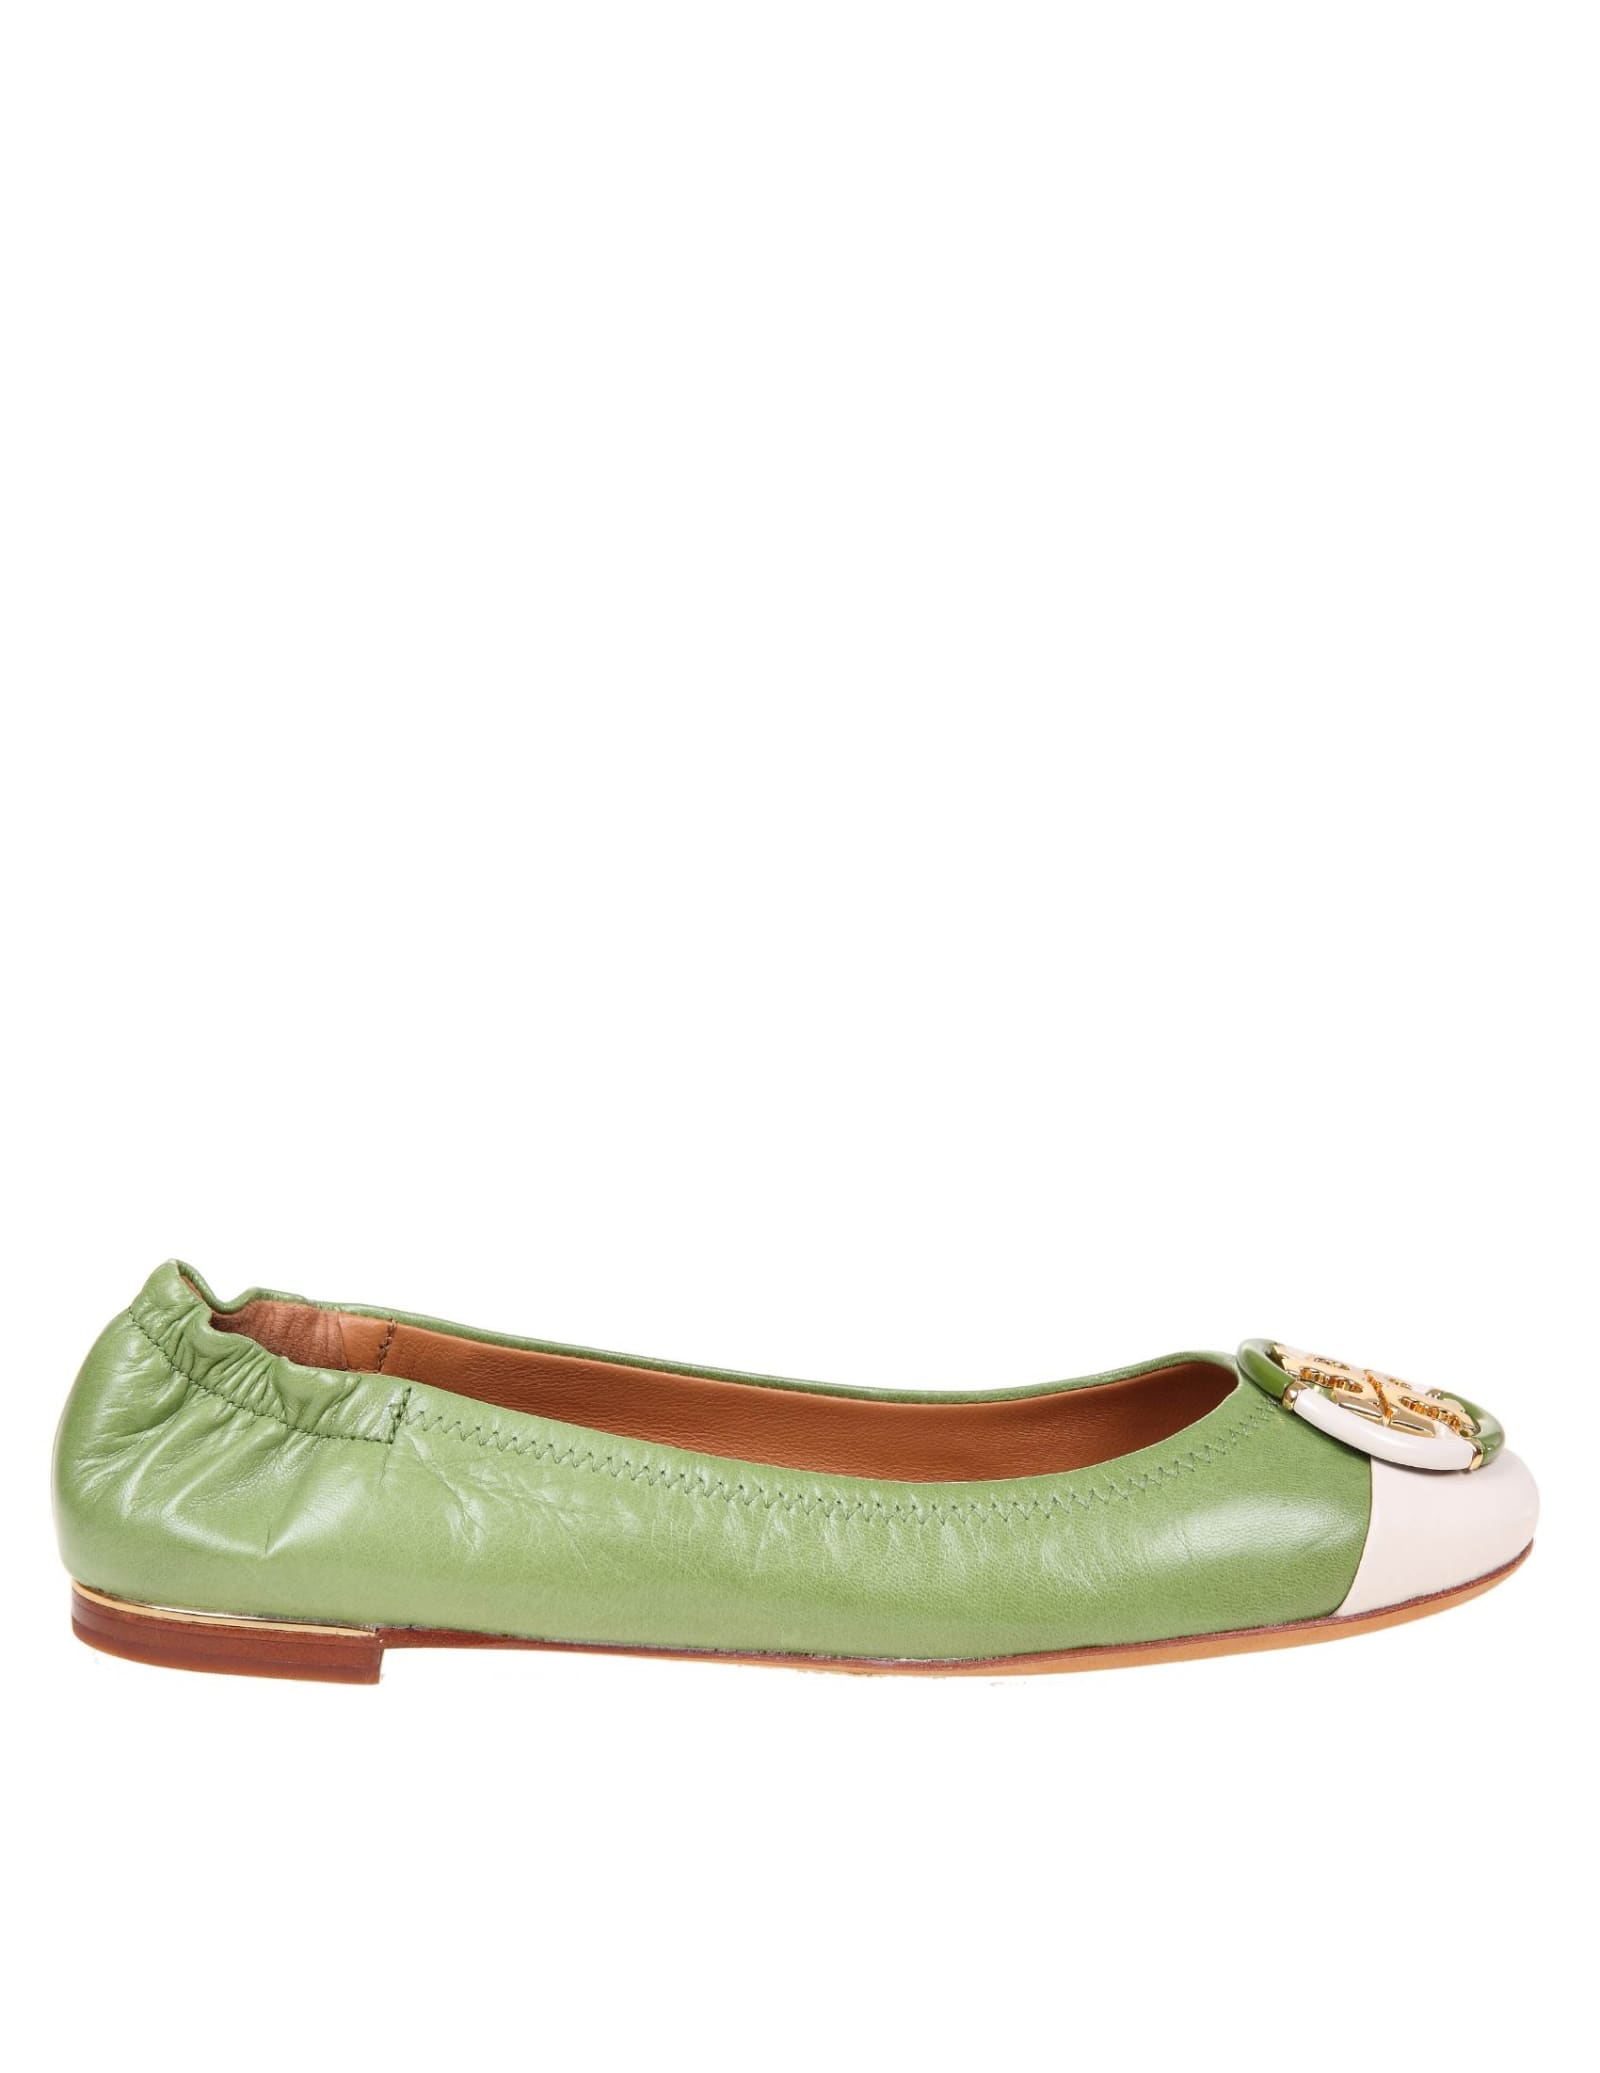 Buy Tory Burch Ballerina Multi Logo In Green Leather online, shop Tory Burch shoes with free shipping